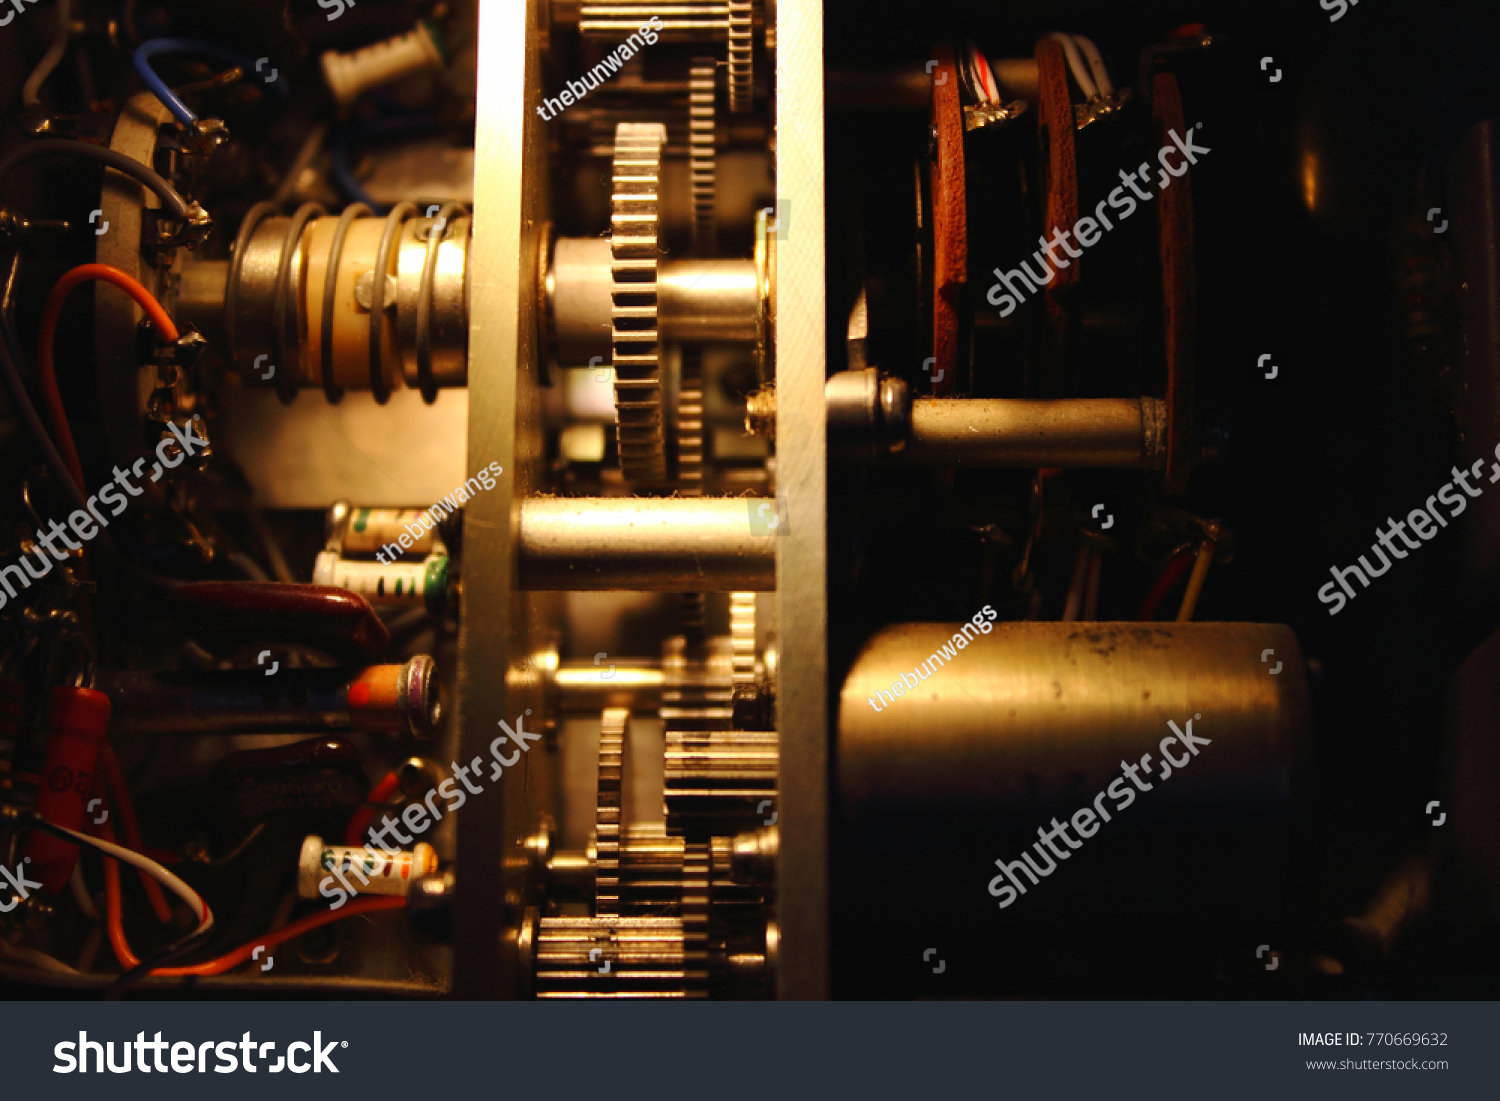 Servo Motor And Gear In Electronics Circuit Of Adf Receiver Id 770669632